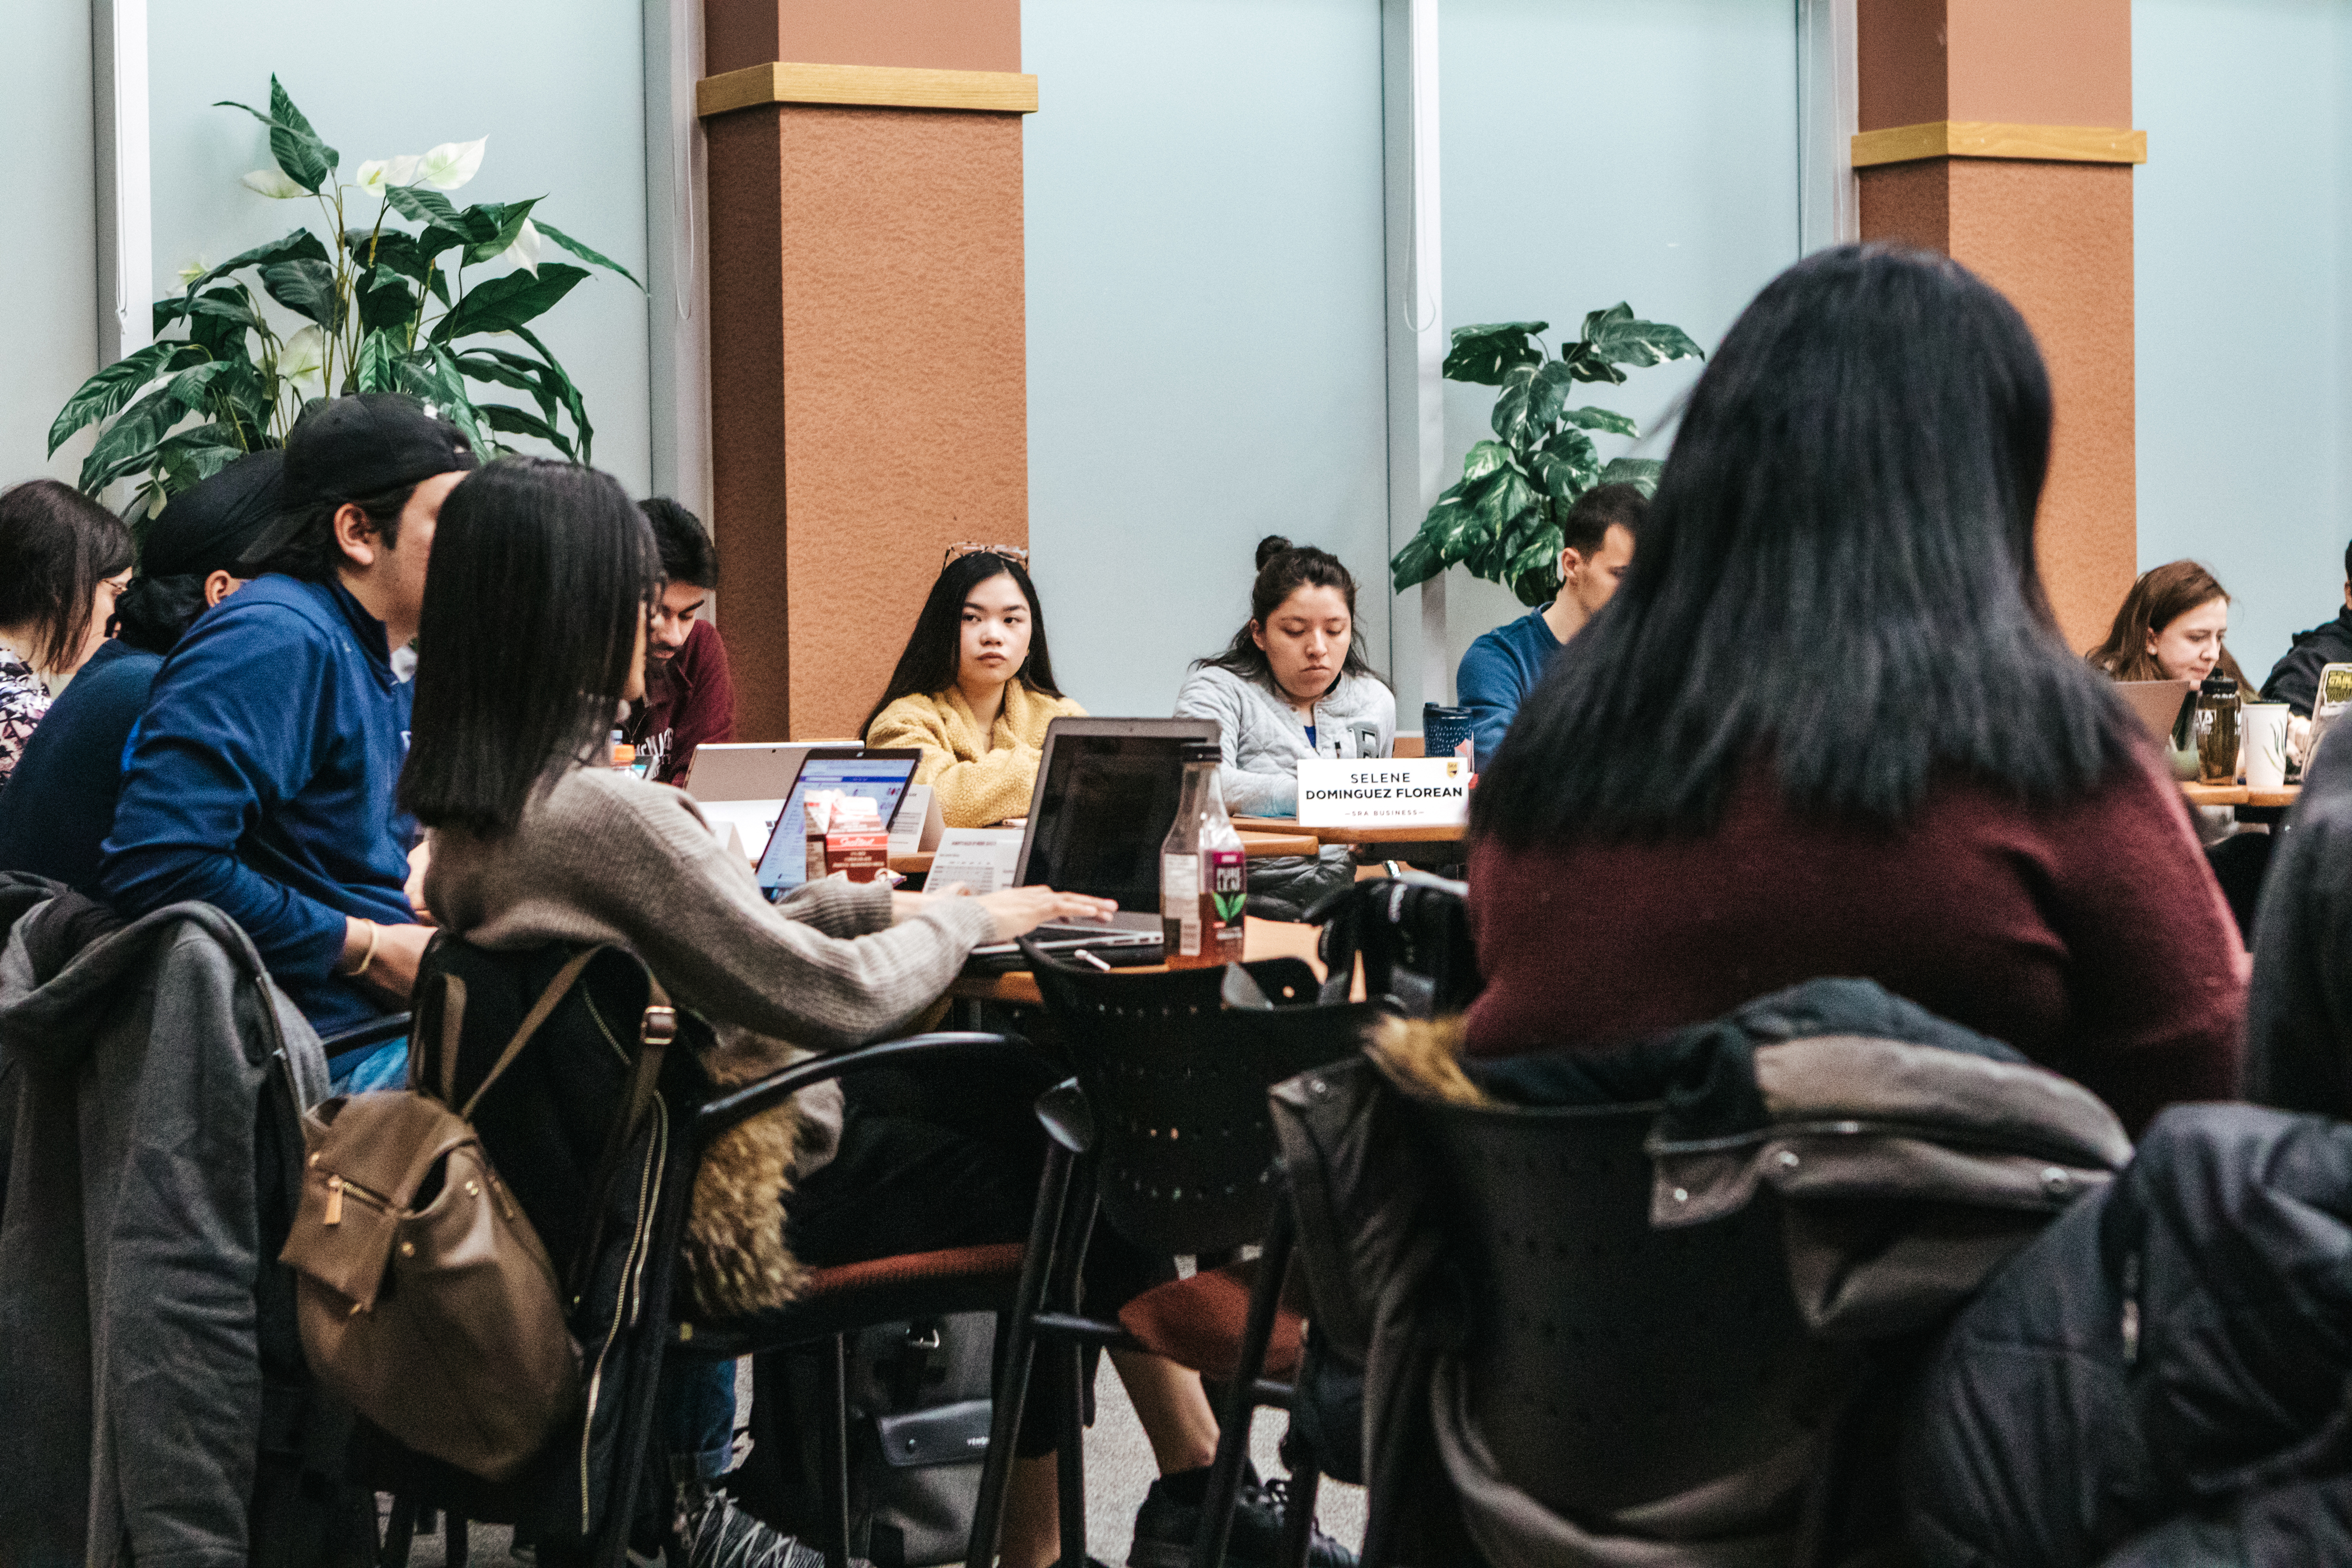 What is the point of student politics? The Student Representative Assembly needs to do a better job at engaging first-year students